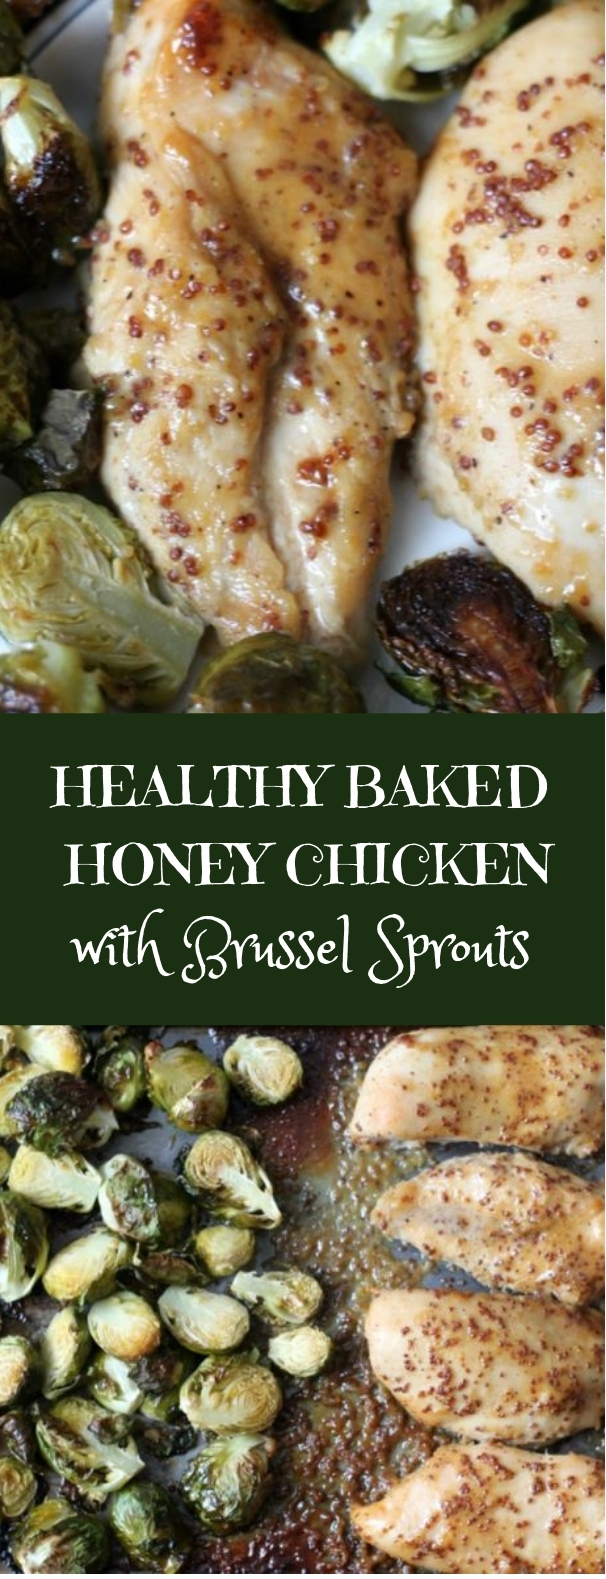 Healthy Baked Honey Mustard Chicken Breast with Brussel Sprout #healthy #lowcarb